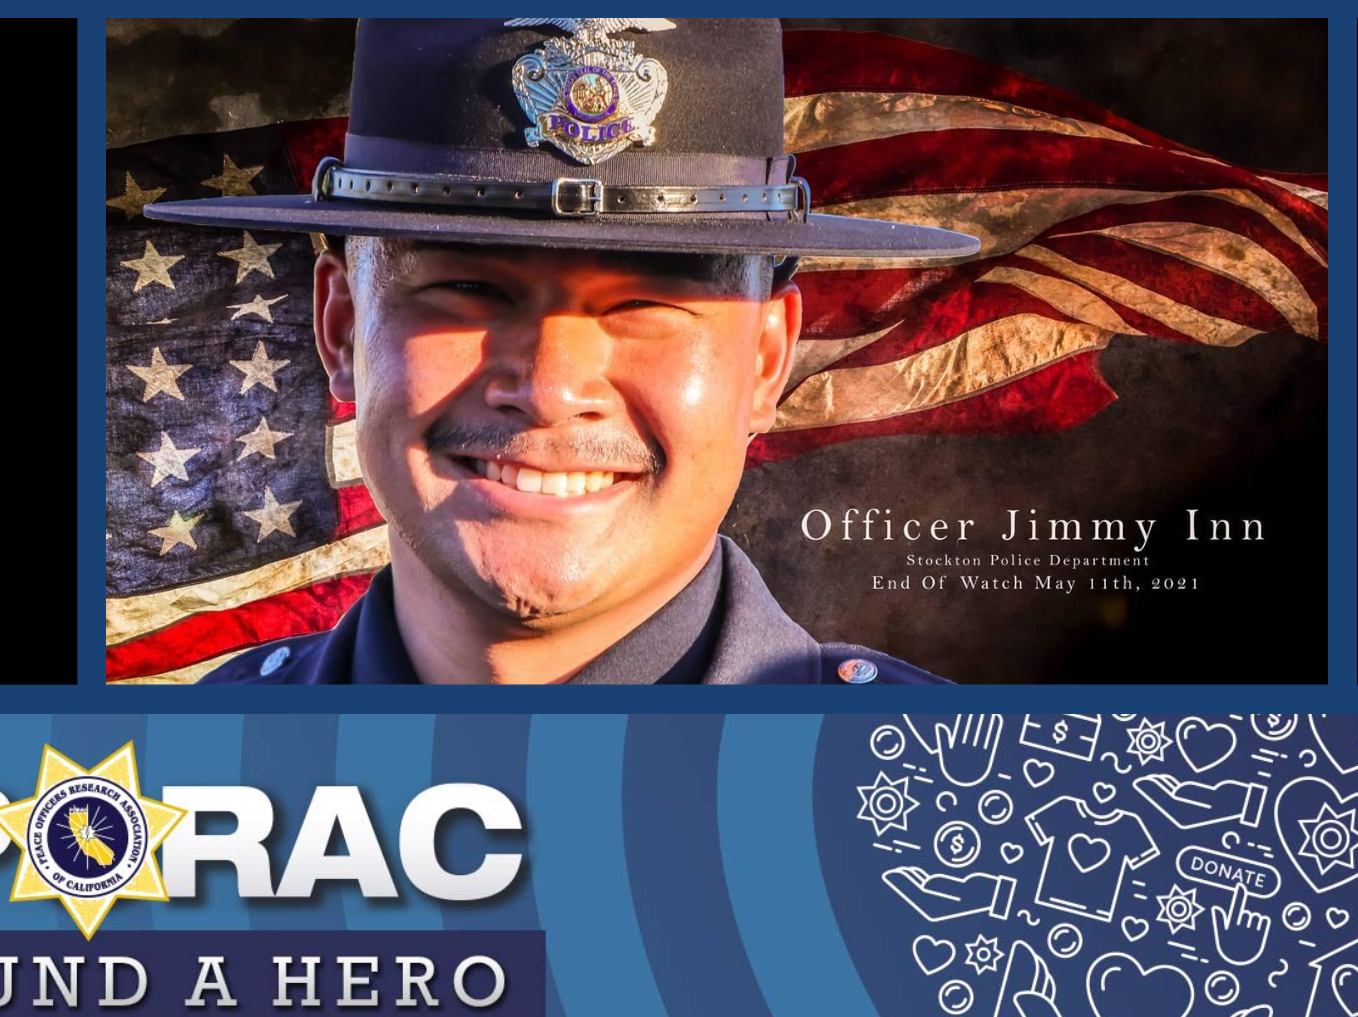 Fund a Hero: The Officer Jimmy Inn Memorial Fund